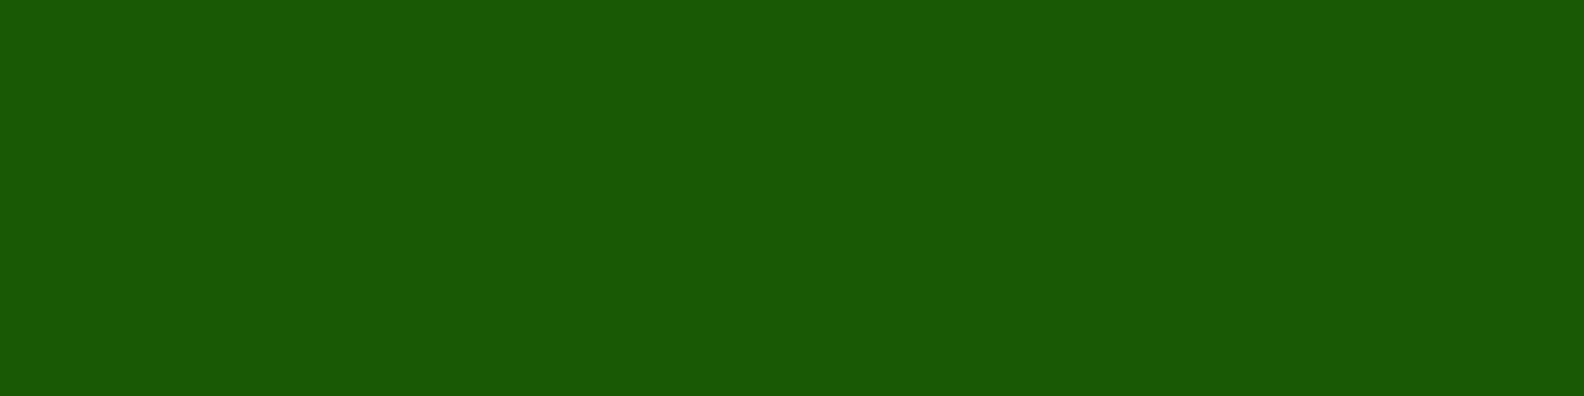 1584x396 Lincoln Green Solid Color Background